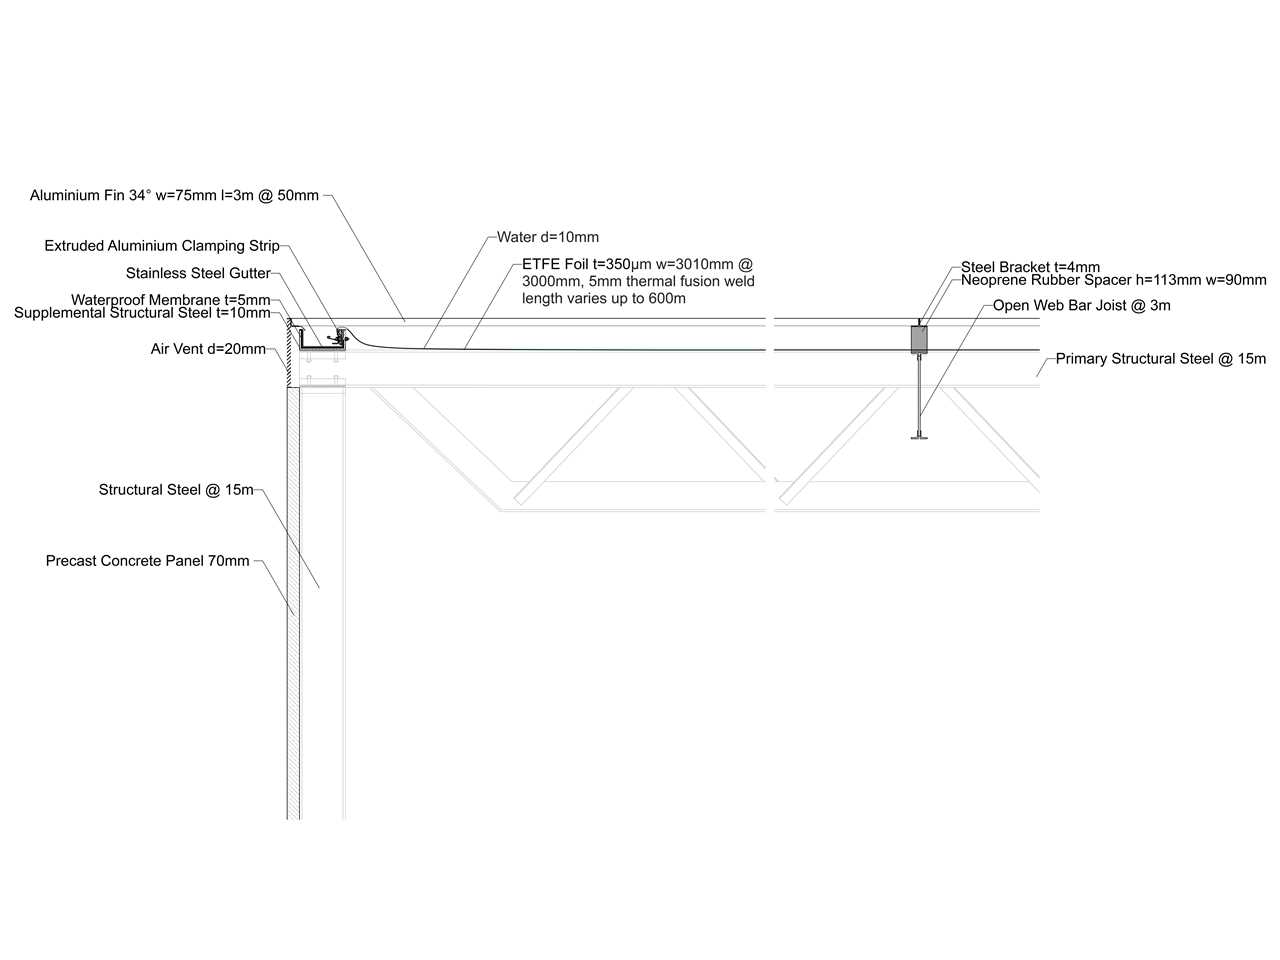 Prototype for an evaporative roof for radiant cooling, Cherry Valley, CA, USA